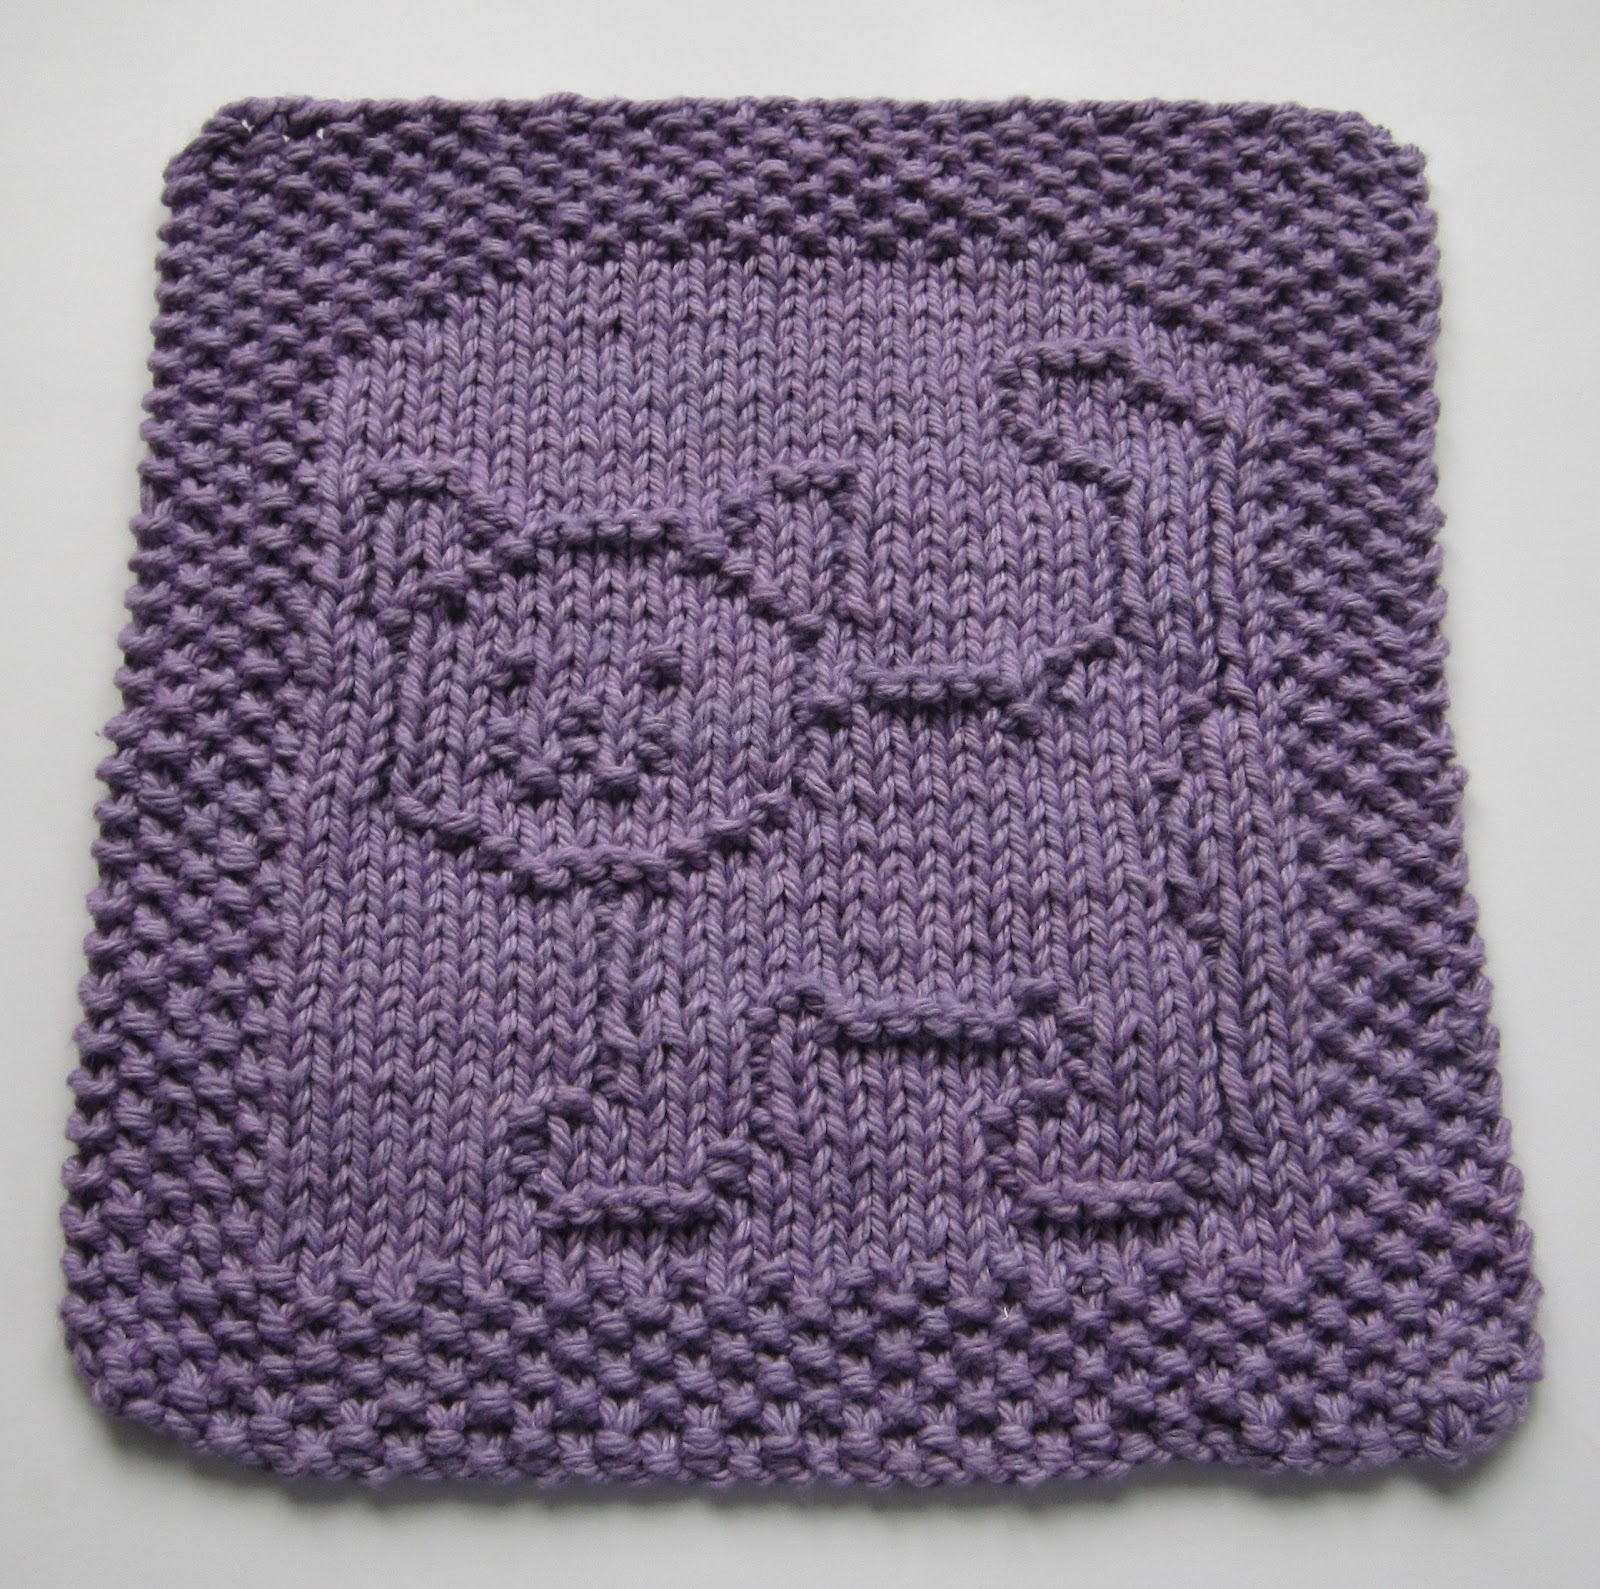 Dishcloth Knit Patterns Free : Free Dishcloths Washcloths Knitting Patterns 2016 Car Release Date